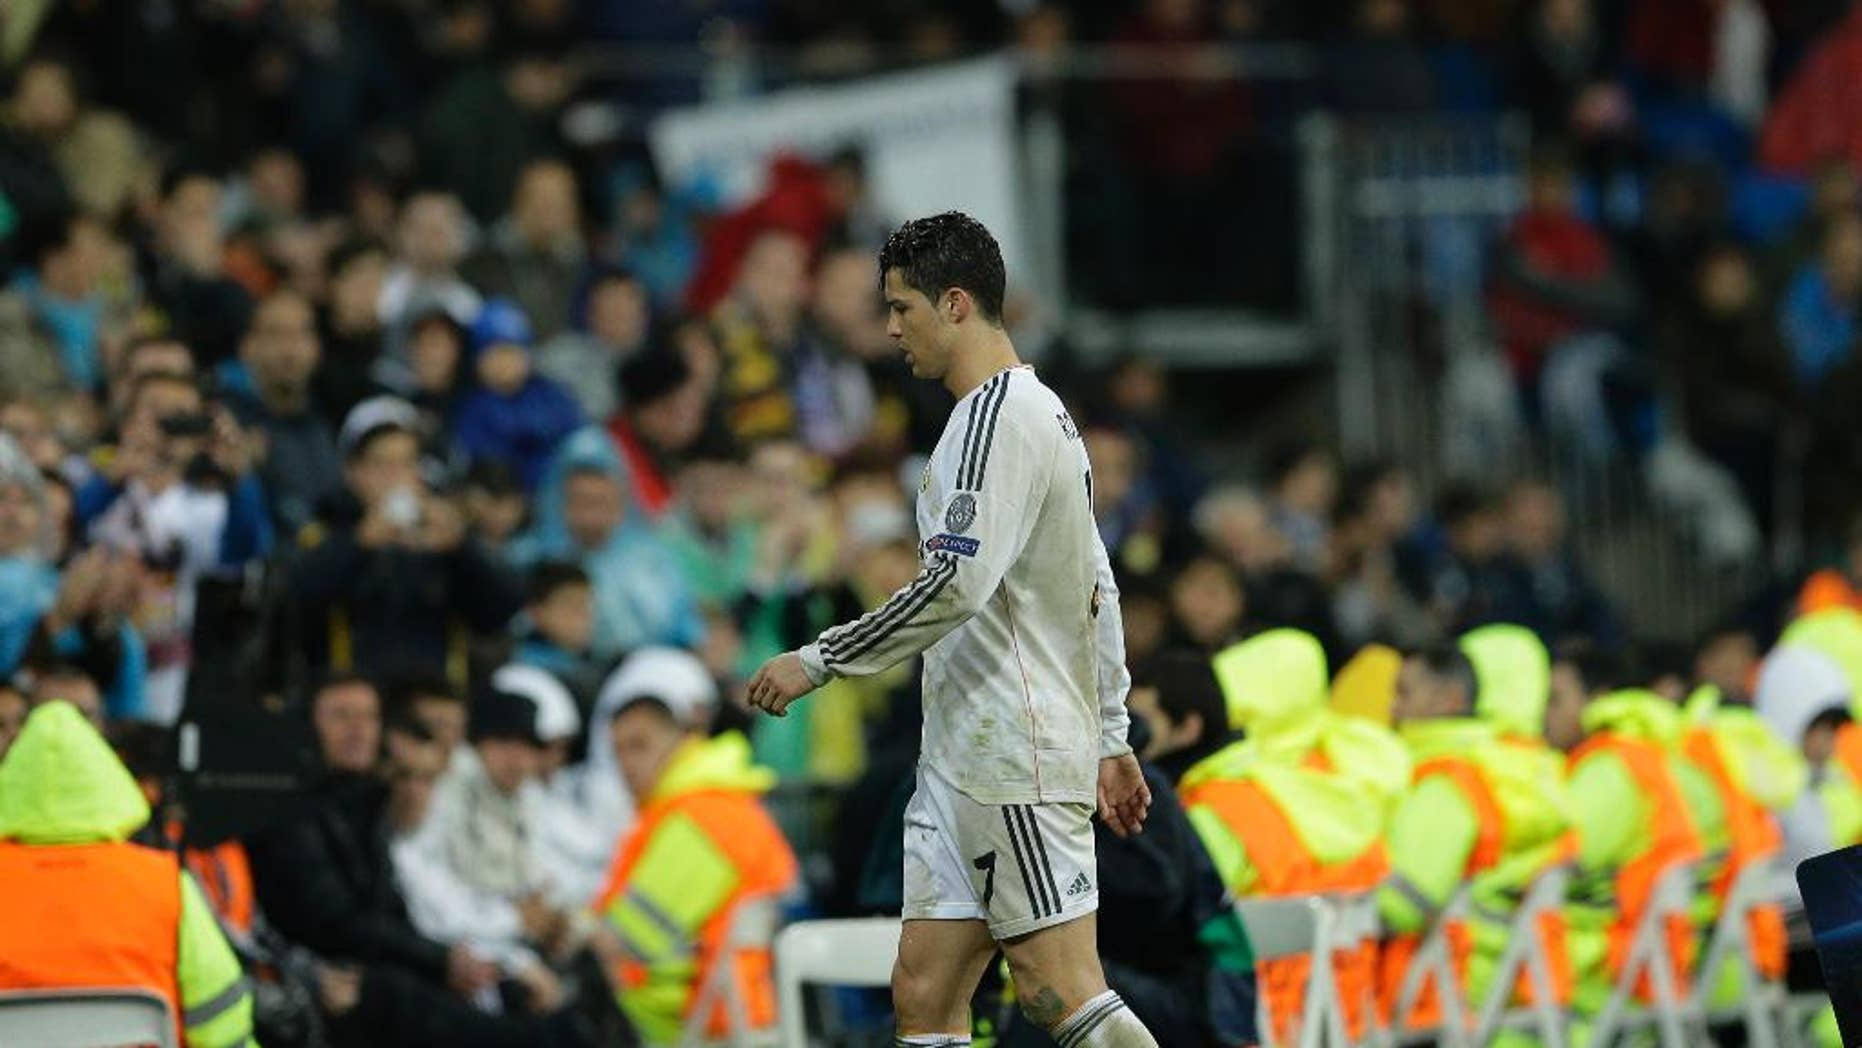 Real's Cristiano Ronaldo leaves the game during a Champions League quarterfinal first leg soccer match between Real Madrid and Borussia Dortmund at the Santiago Bernabeu   stadium in Madrid, Spain, Wednesday April 2, 2014. (AP Photo/Paul White)